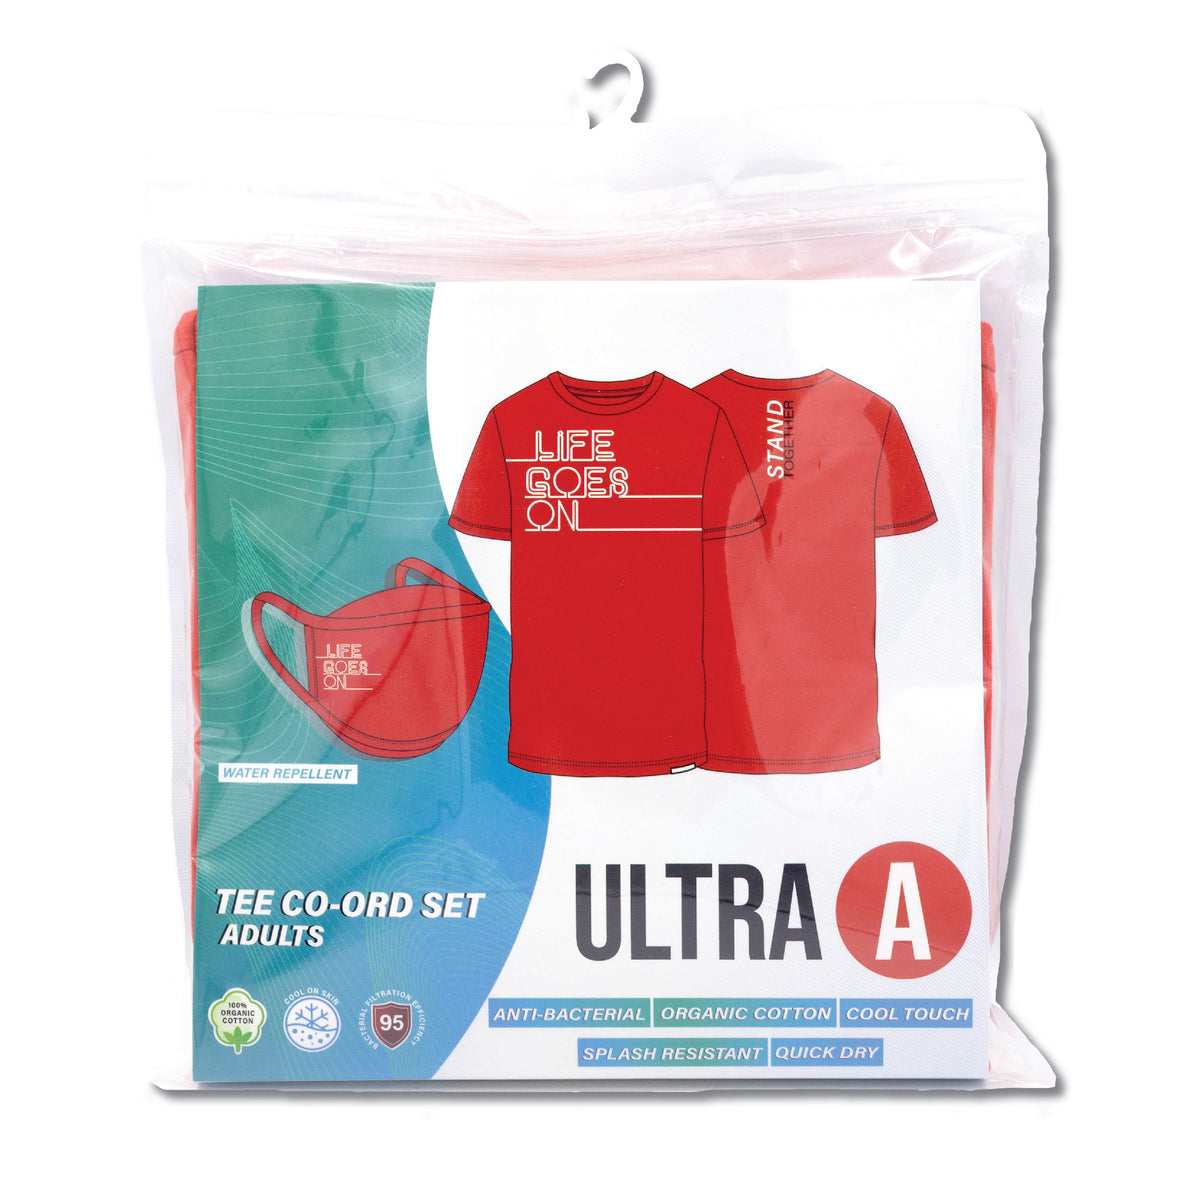 Anti-Bacterial Unisex Tee + 3-Ply Anti-Bacterial Mask Co-Ord Set (Life Goes On - Adults)